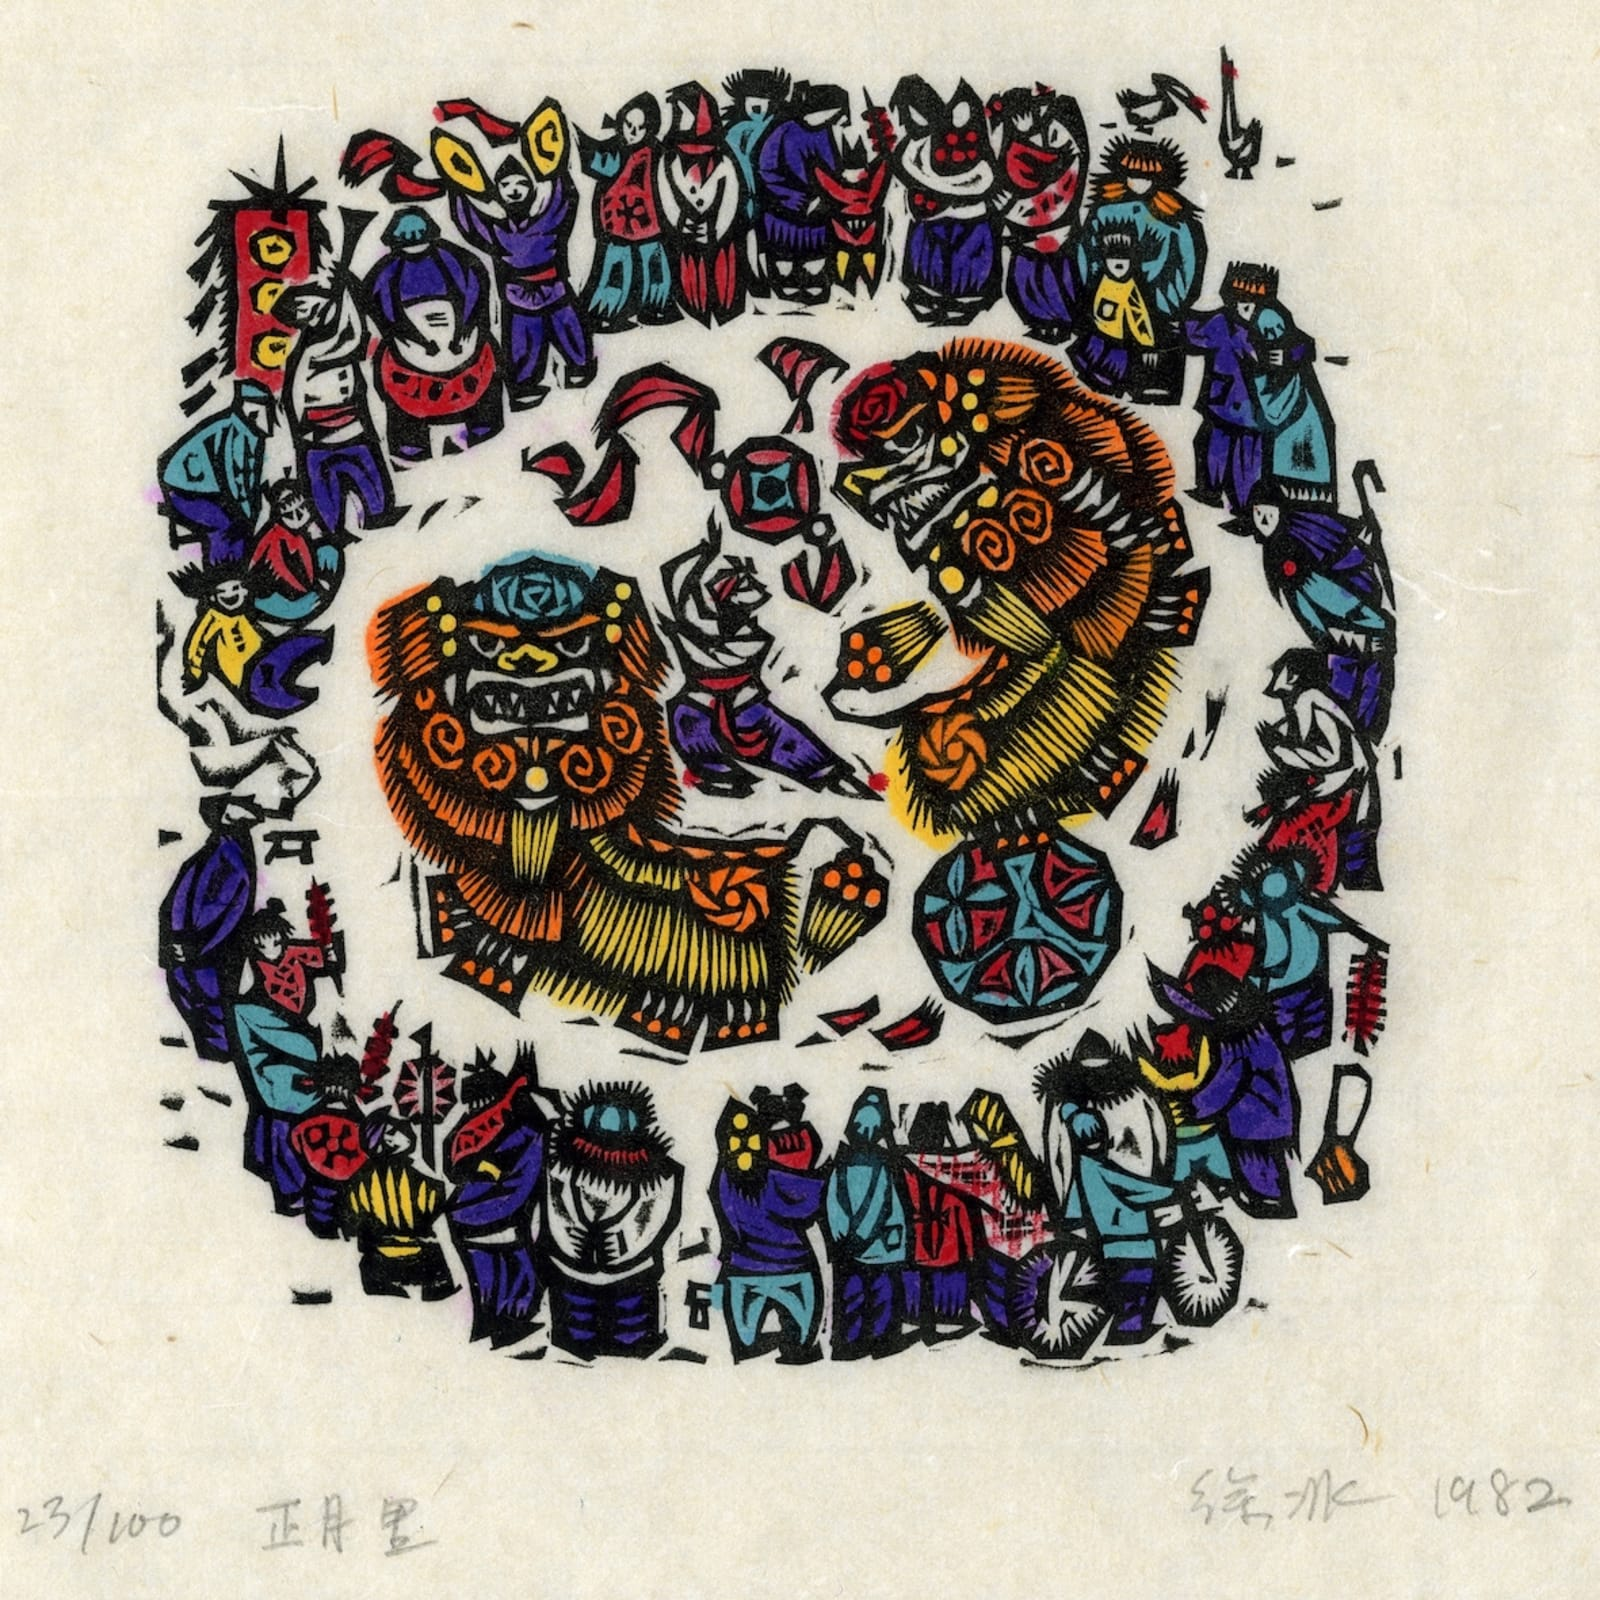 Xu Bing 徐冰, The First Lunar Month 正月里, 1982